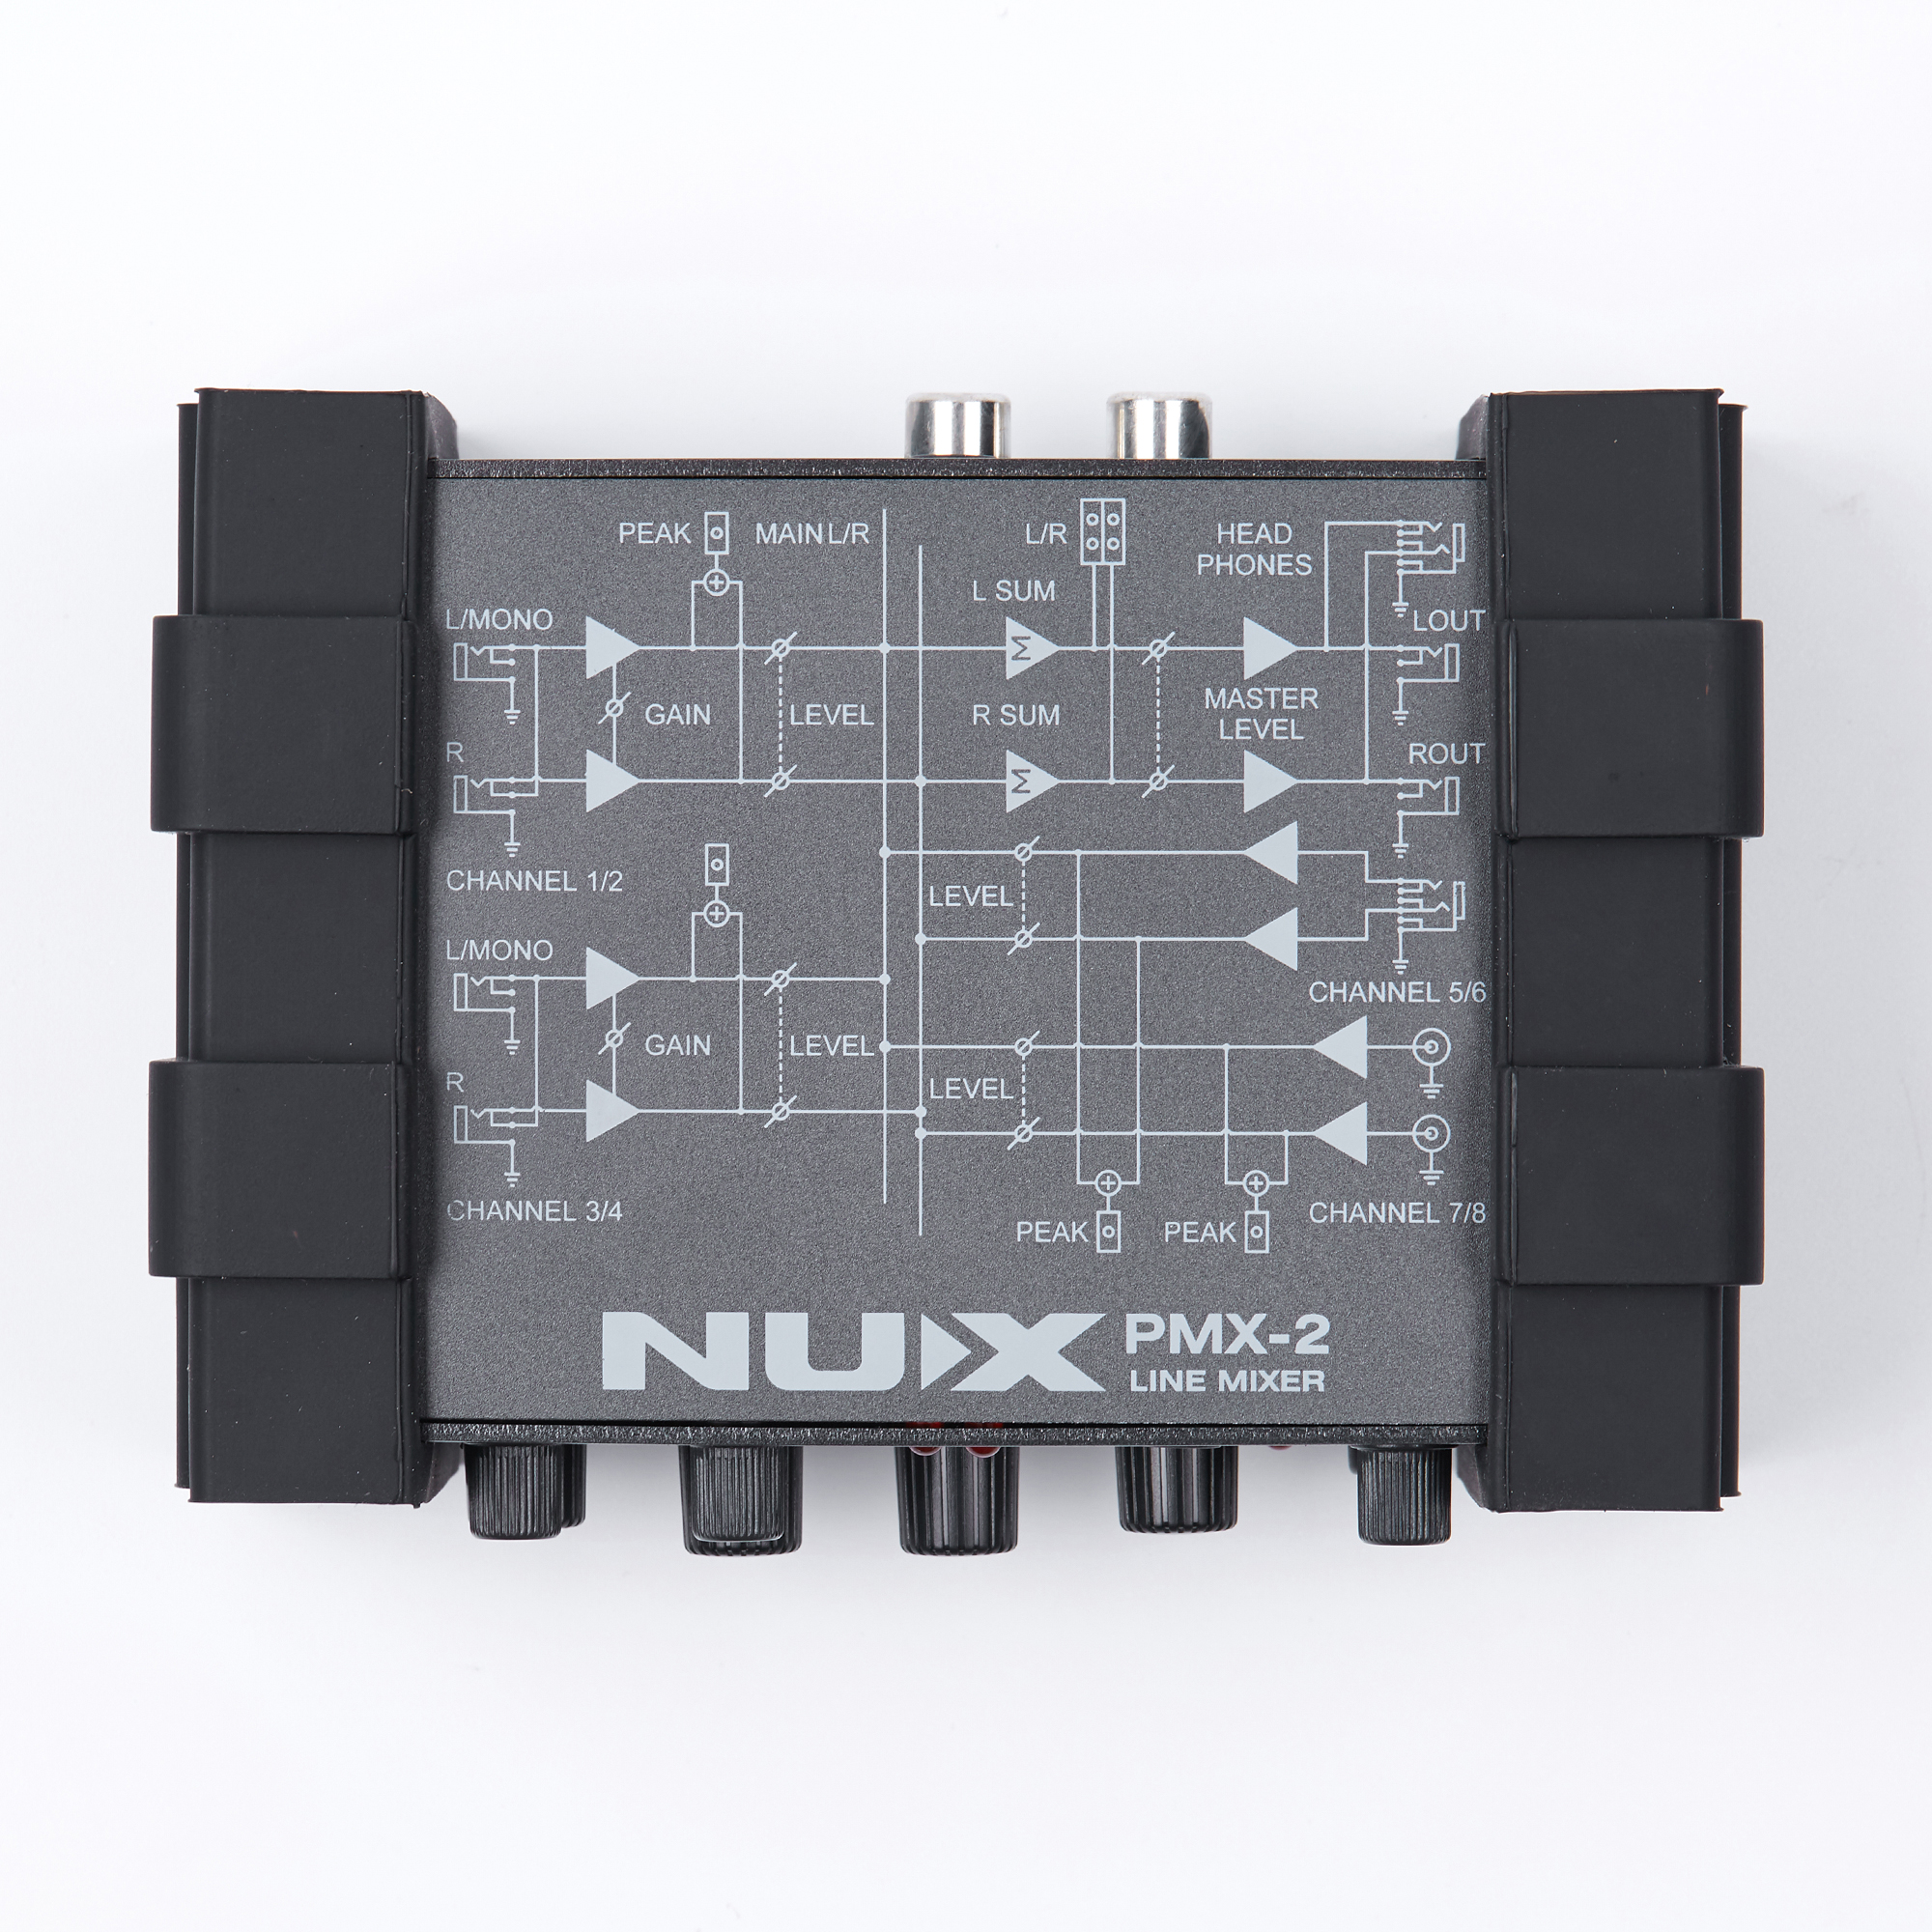 Gain Control 8 Inputs and 2 Outputs NUX PMX-2 Multi-Channel Mini Mixer 30 Musical Instruments Accessories for Guitar Bass Player аппарат для сварки полипропиленовых труб ресанта аспт 2000